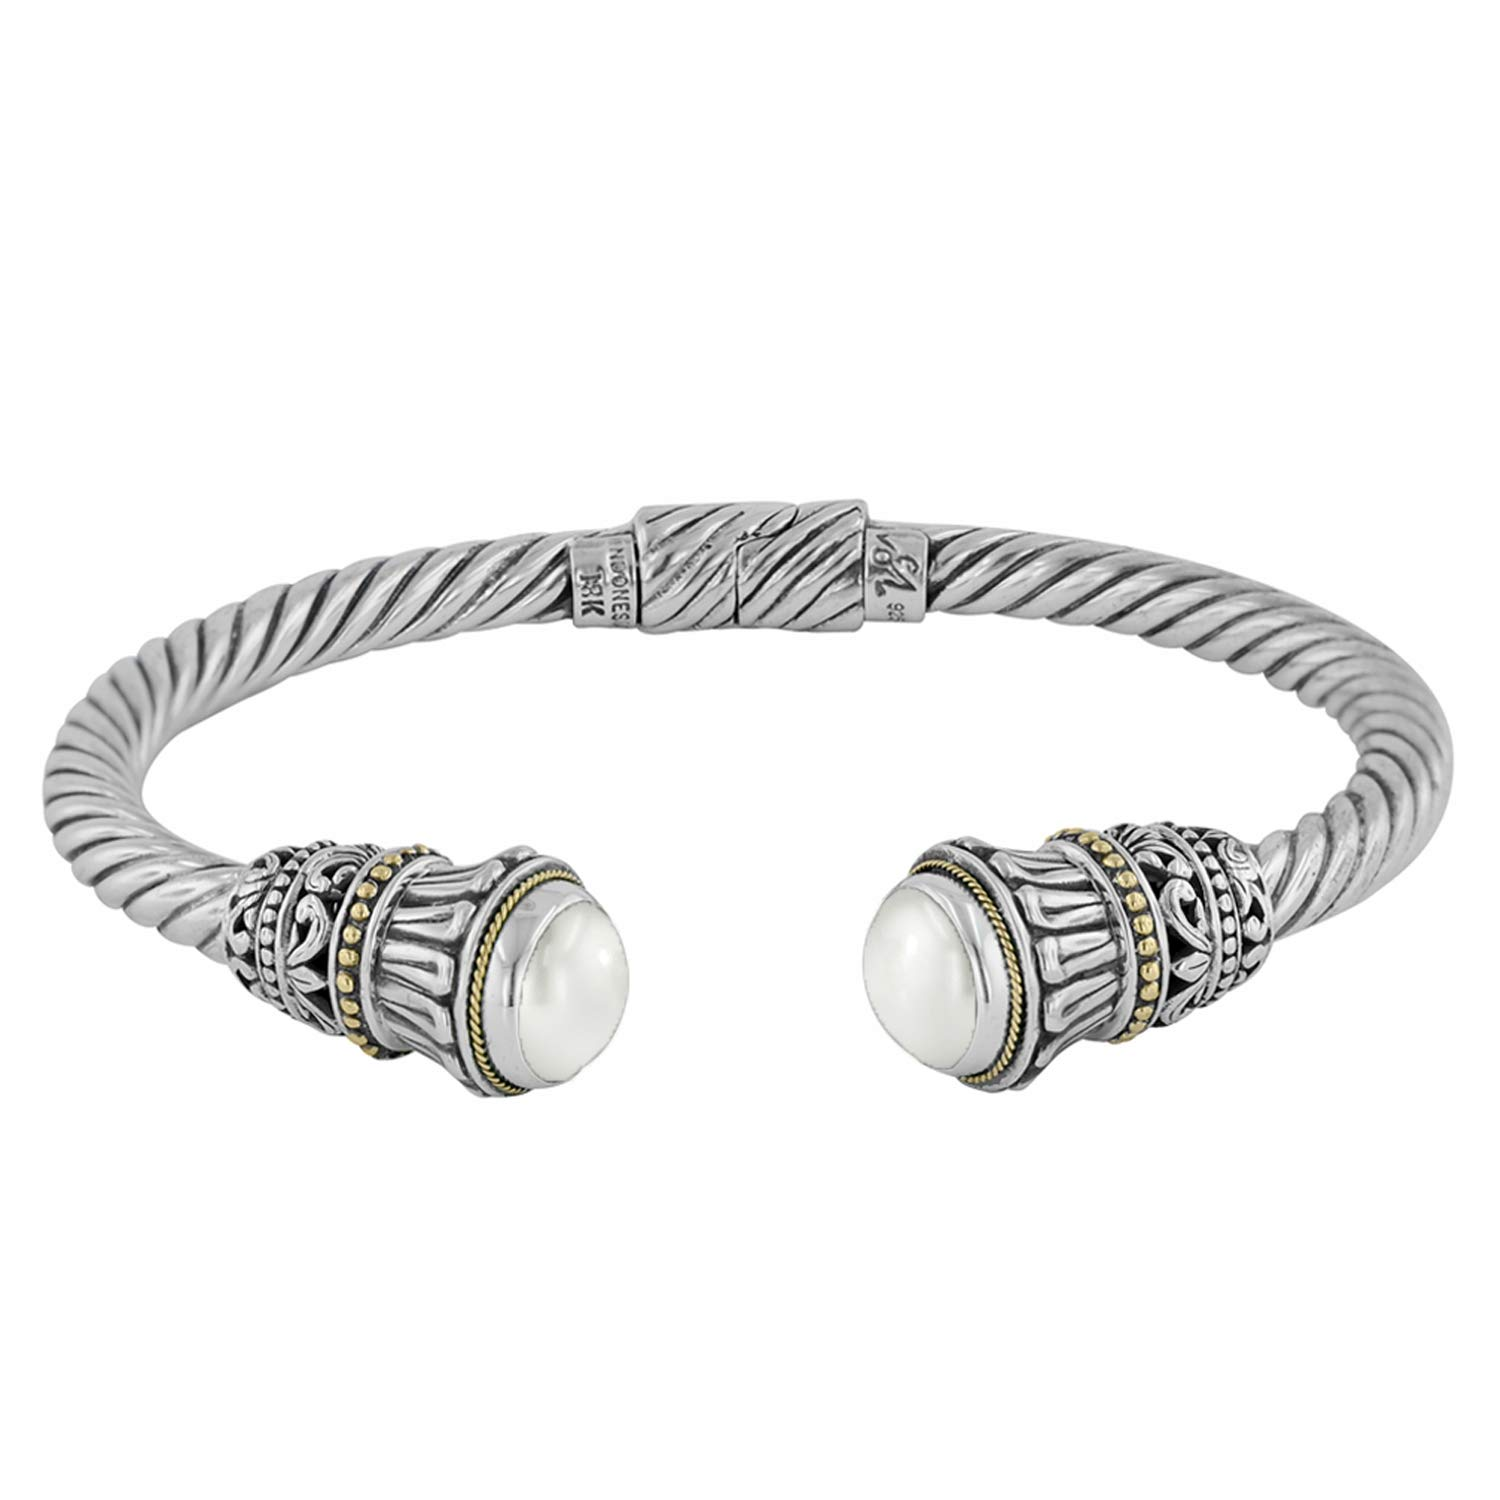 Robert Manse Designs Bali RoManse Sterling Silver and 18K Gold Hinged Cable Cuff (7.25)